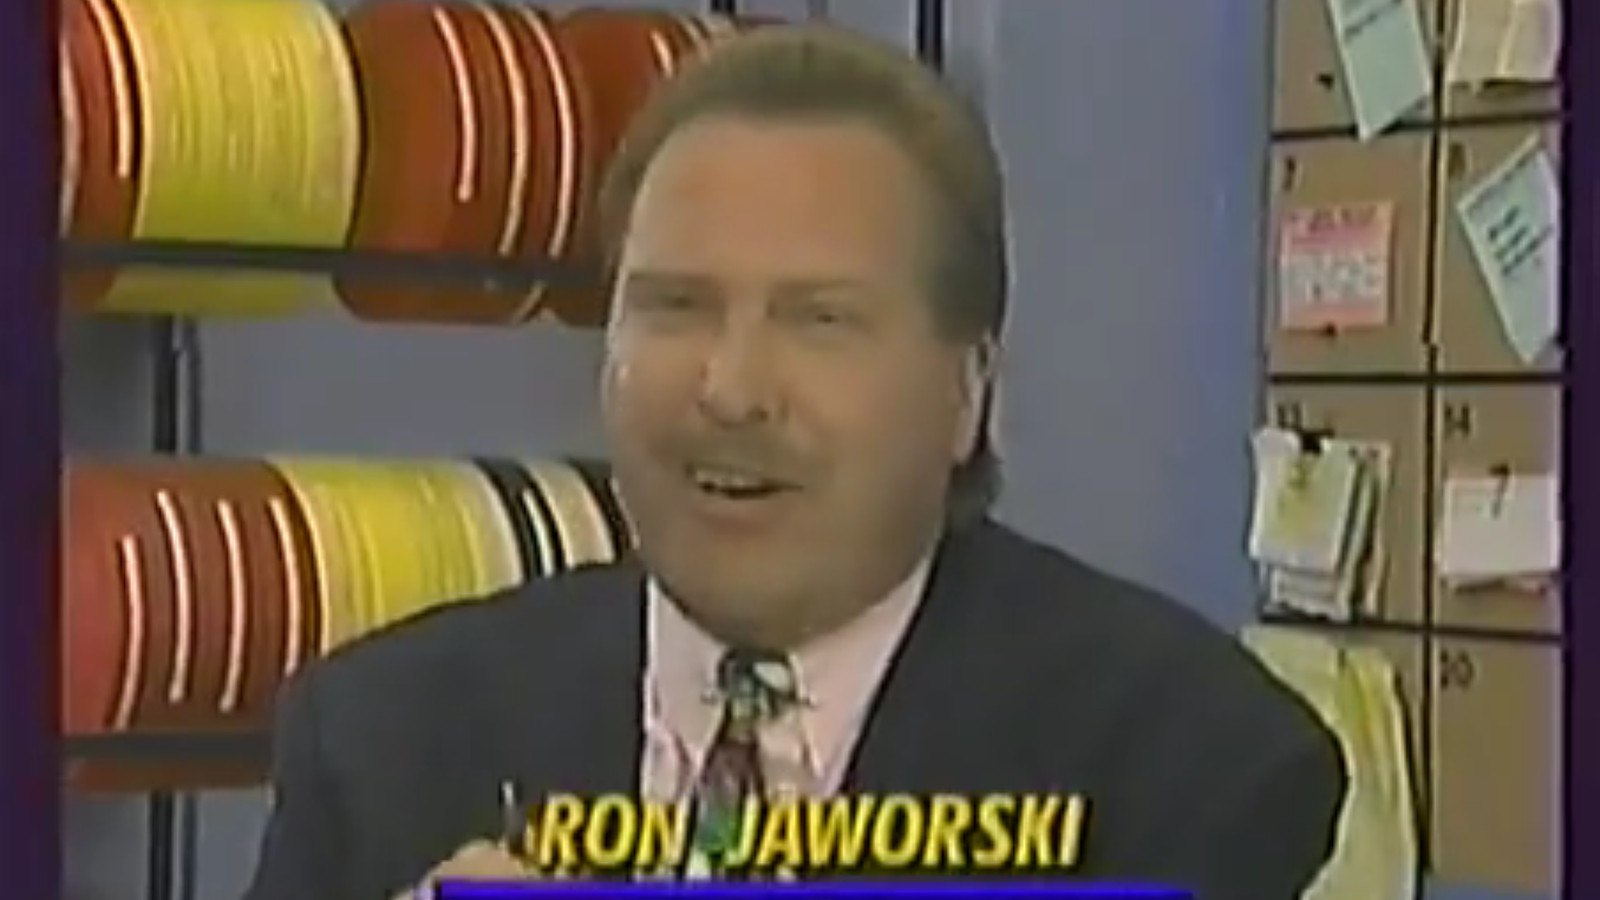 SB Nation selects Ron Jaworskis mullet SBNationcom : jawsmullet0 from www.sbnation.com size 1600 x 900 jpeg 177kB